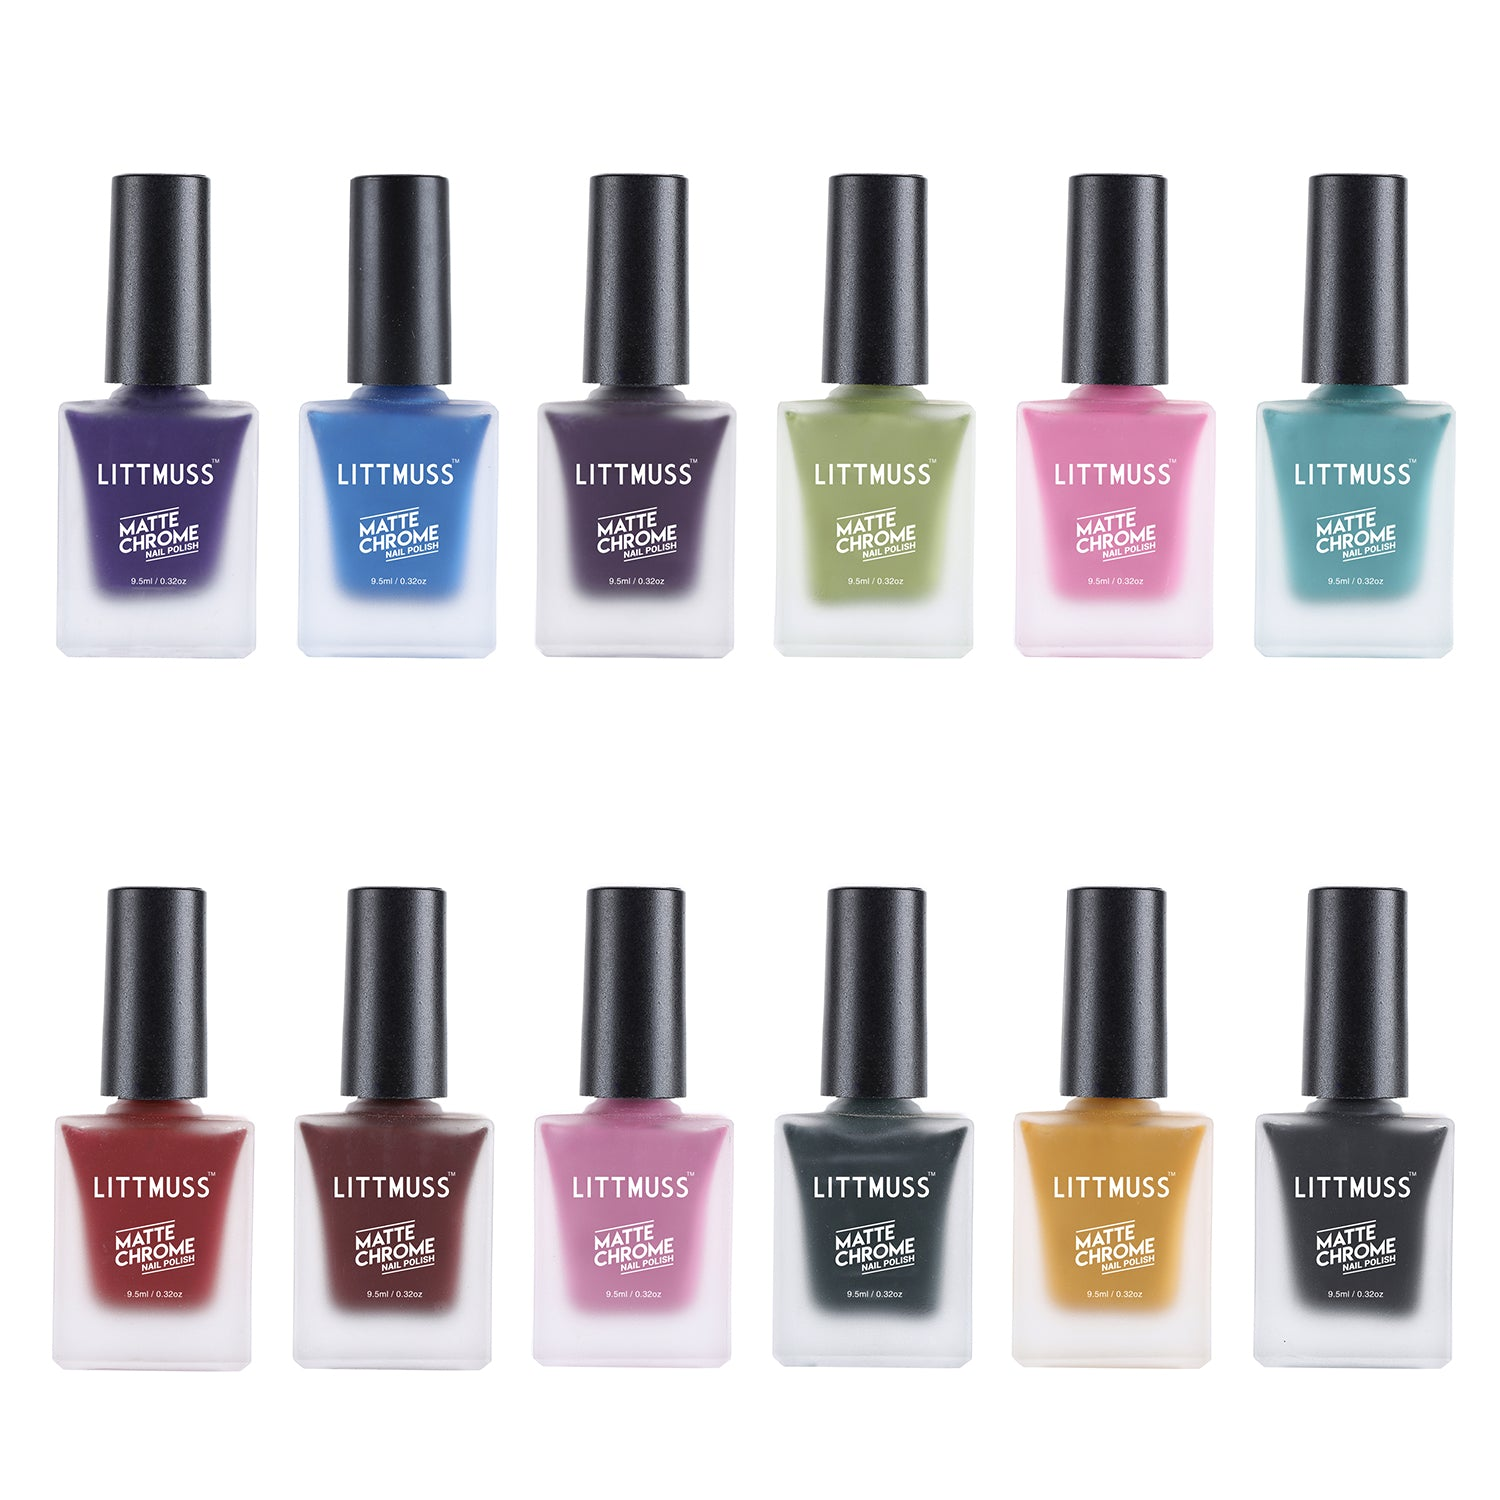 LITTMUSS Matte Chrome Nail Polish New Collection(set of 12)